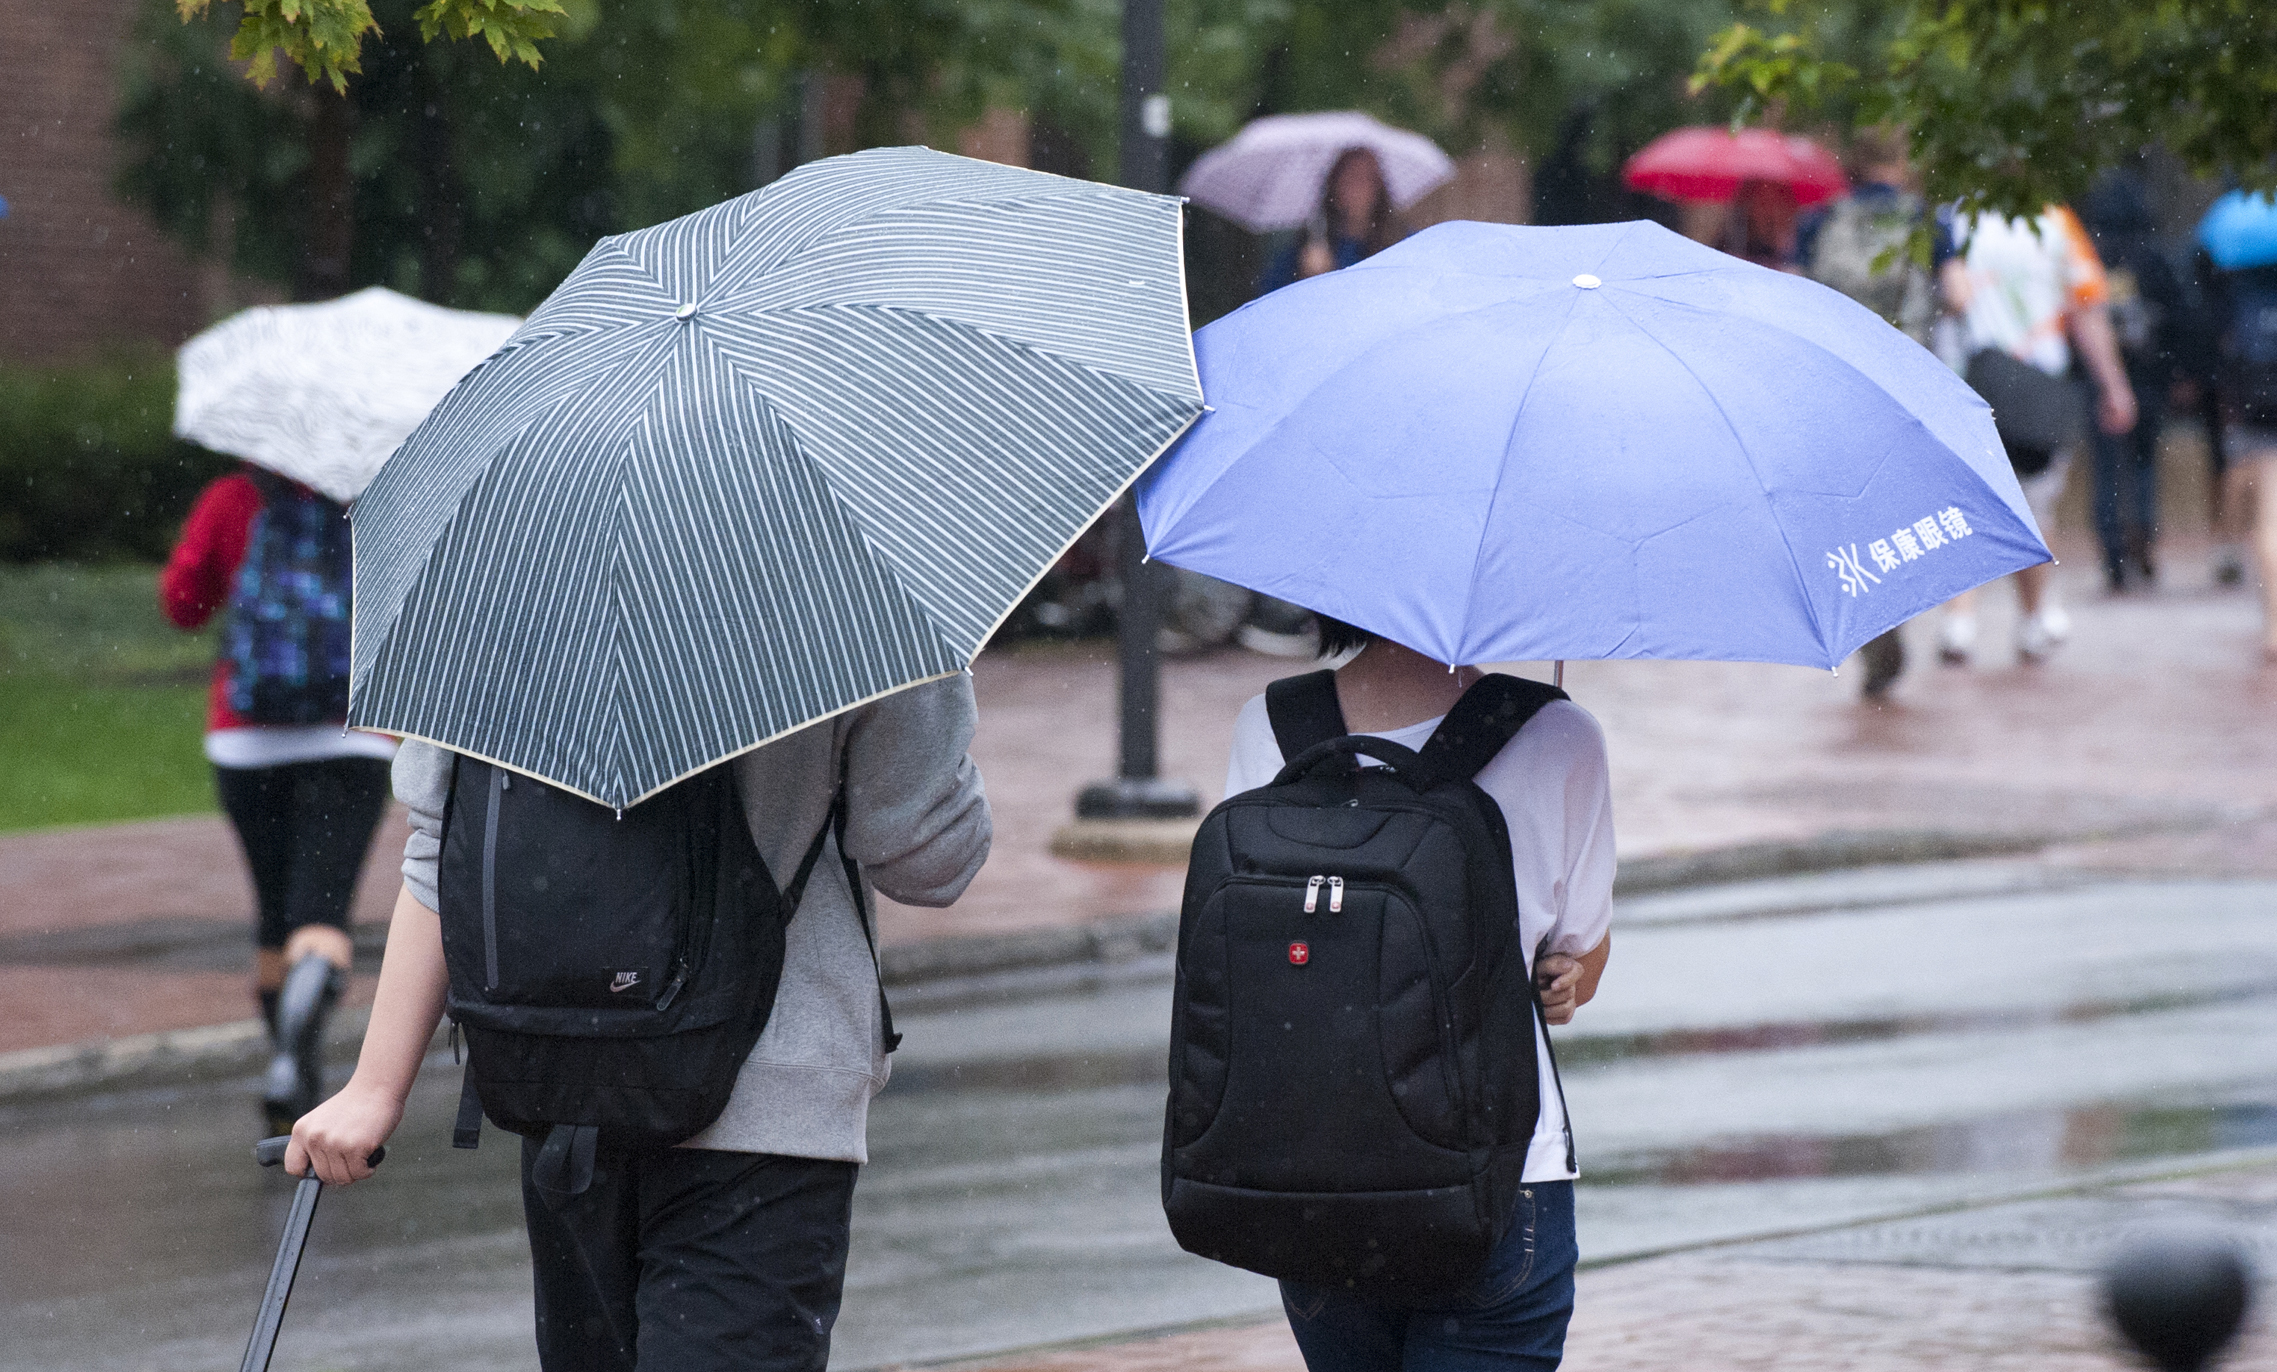 Two students with backpacks from the back with umbrellas walking together in the rain